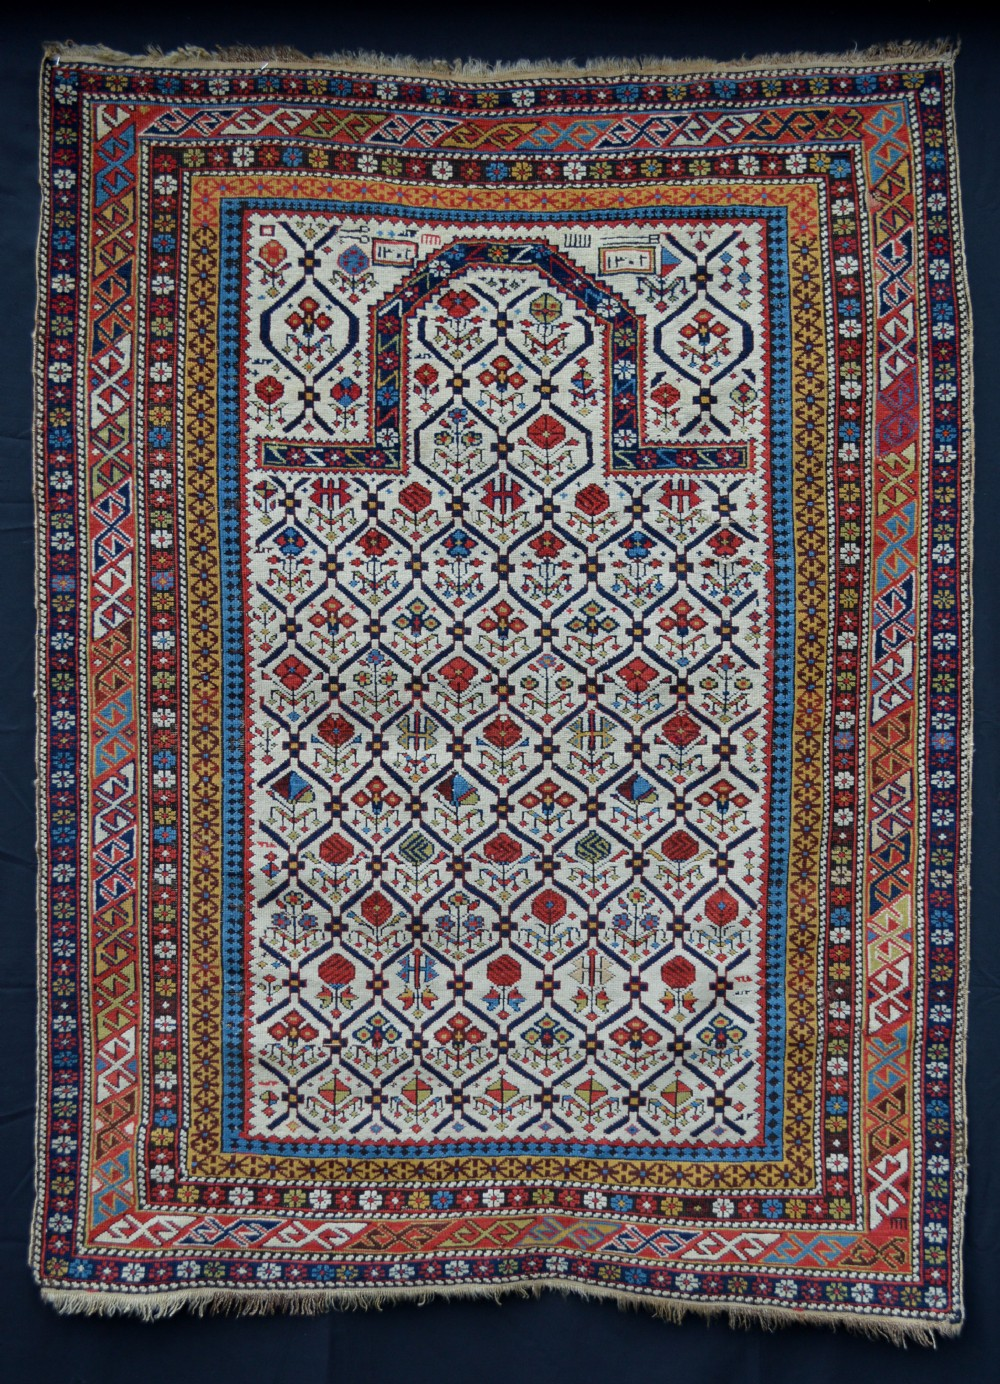 antique prayer rug daghestan eastern caucasus